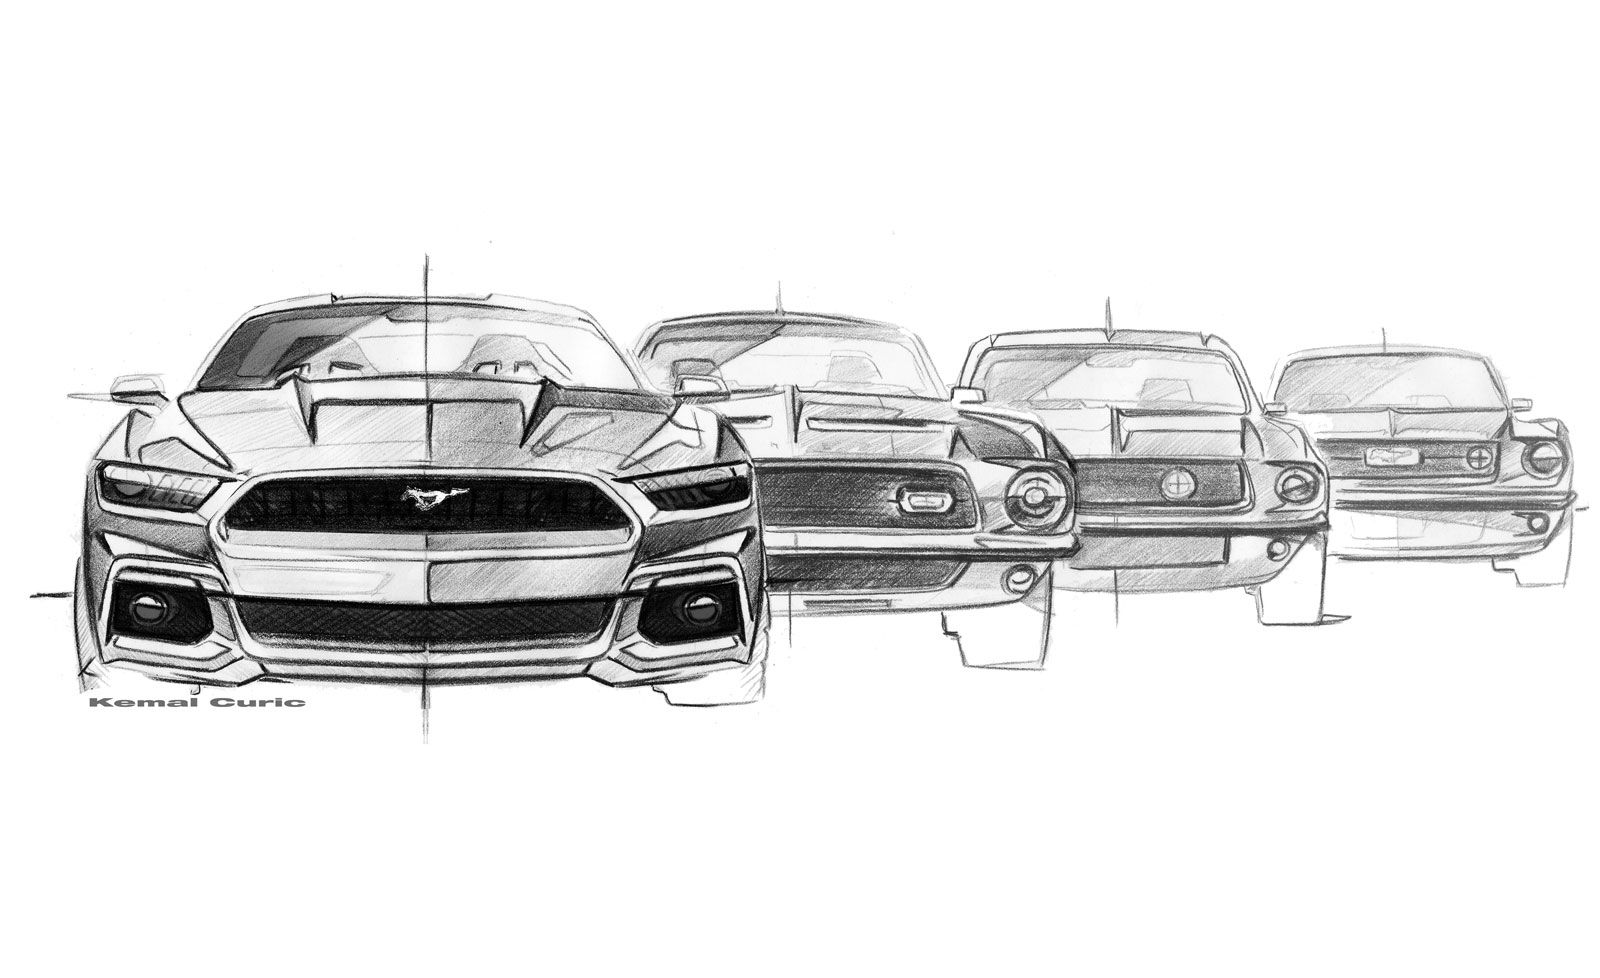 Ford Mustang Design Evolution Sketches By Kemal Curic 2015 Ford Mustang Mustang Art Ford Mustang